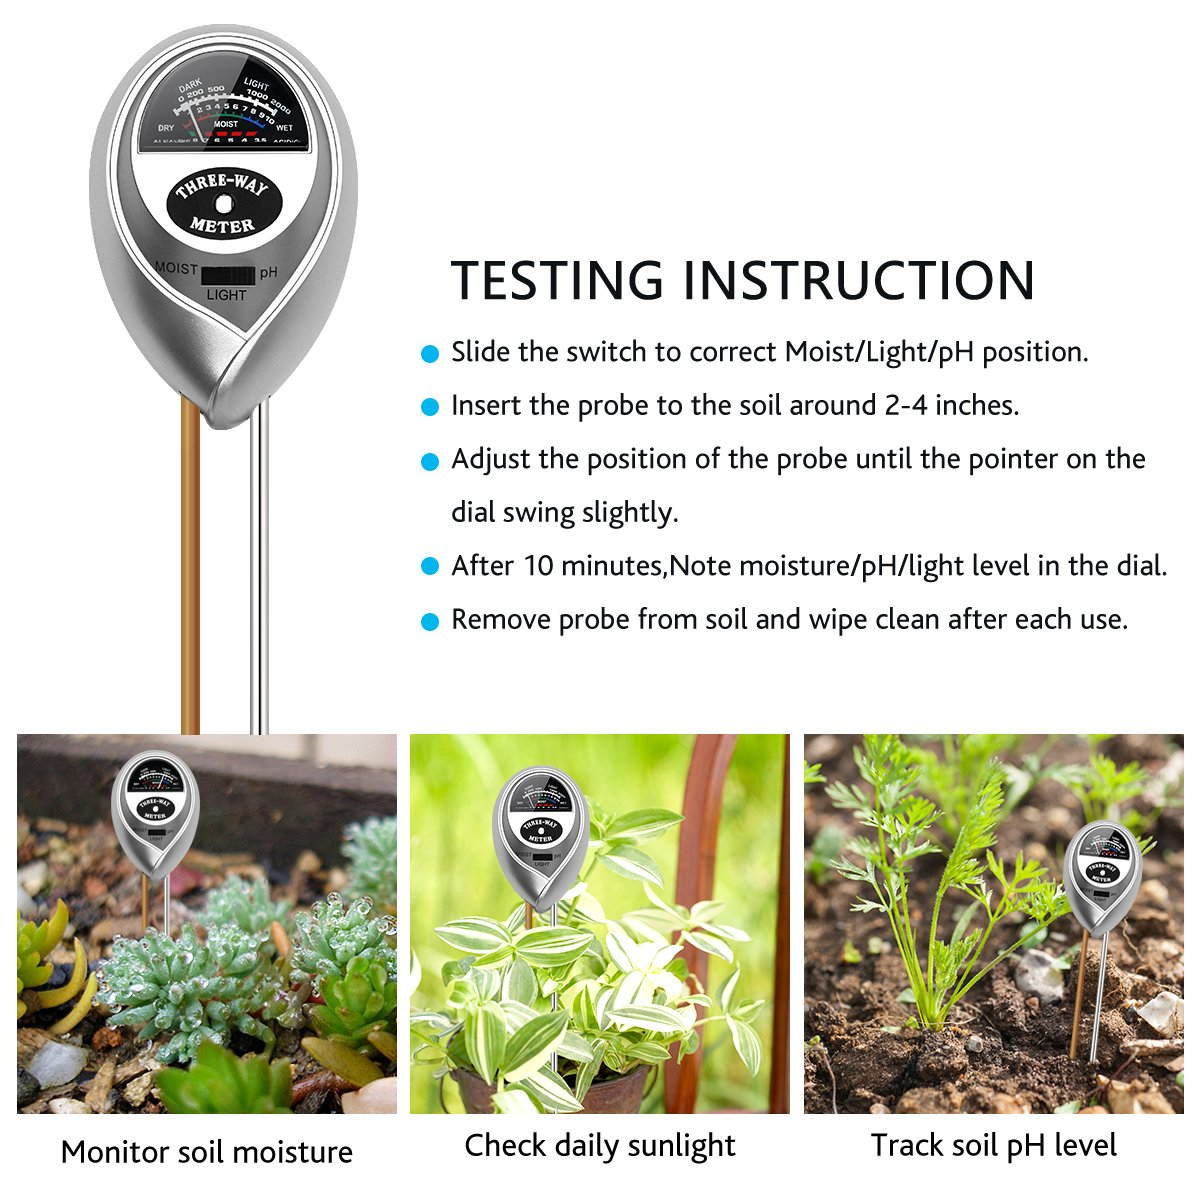 VDROL Soil PH Meter, 3 in 1 Soil Acidity Reader Light PH Moisture Meter Säuretester Pflanzenöltester Kit for Garden, Utilities, Agriculture, Indoor and Outdoor Use (No Battery Required)